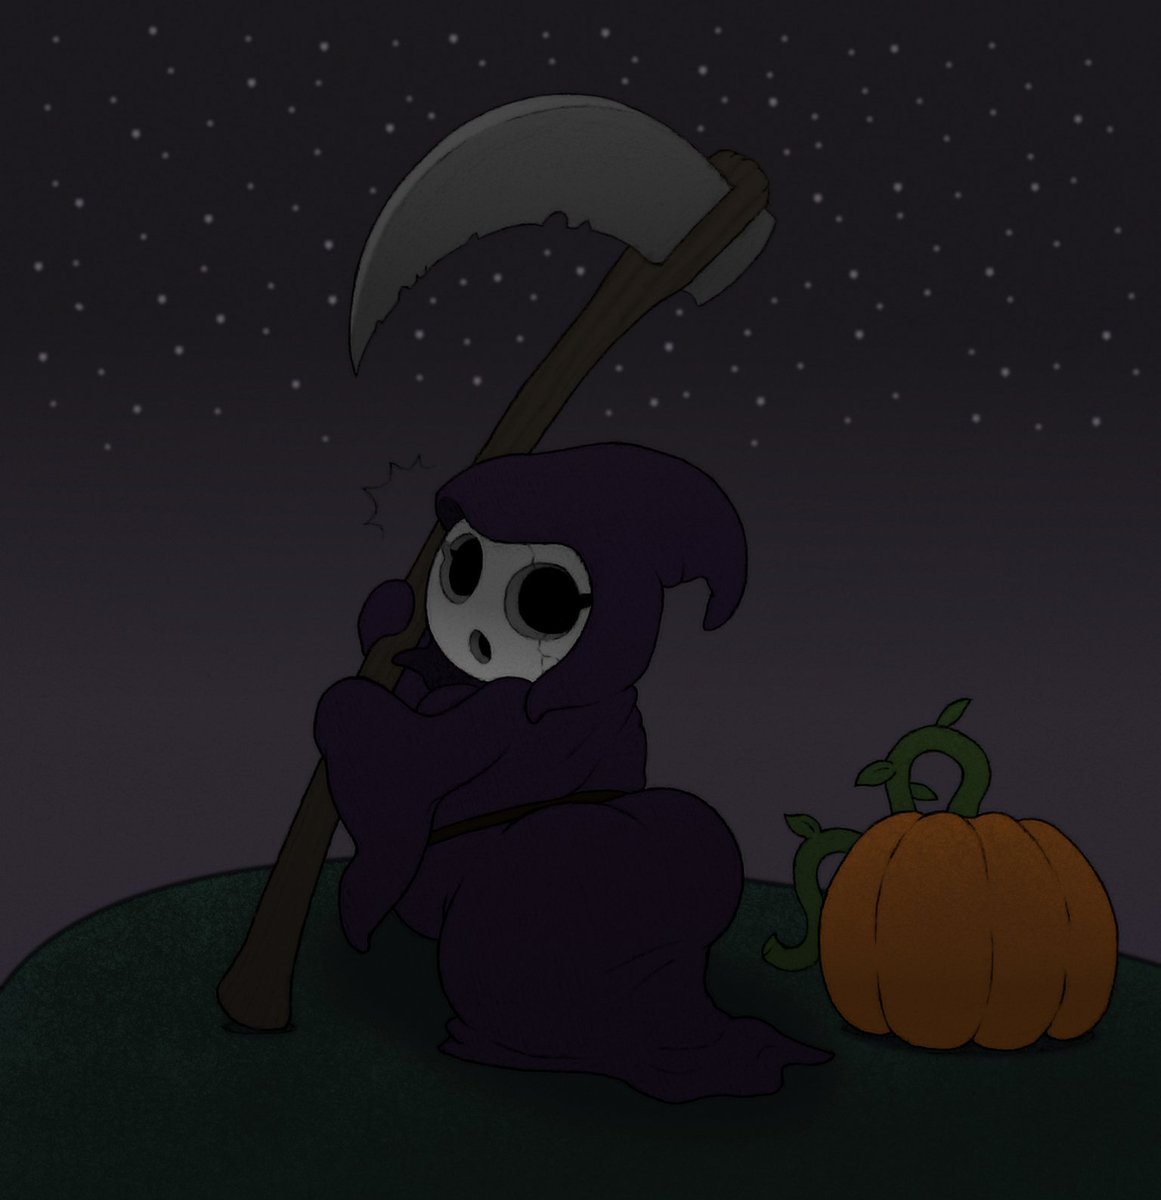 Colored a pic my partner @JerGaia drew last Halloween, It's me as a precious fat lil shortstack shygal ready to do some midnight reaping!  ...Once I figure out how to hold the scythe without falling over, that is. It's heavy! https://t.co/lvCaXaZrkX